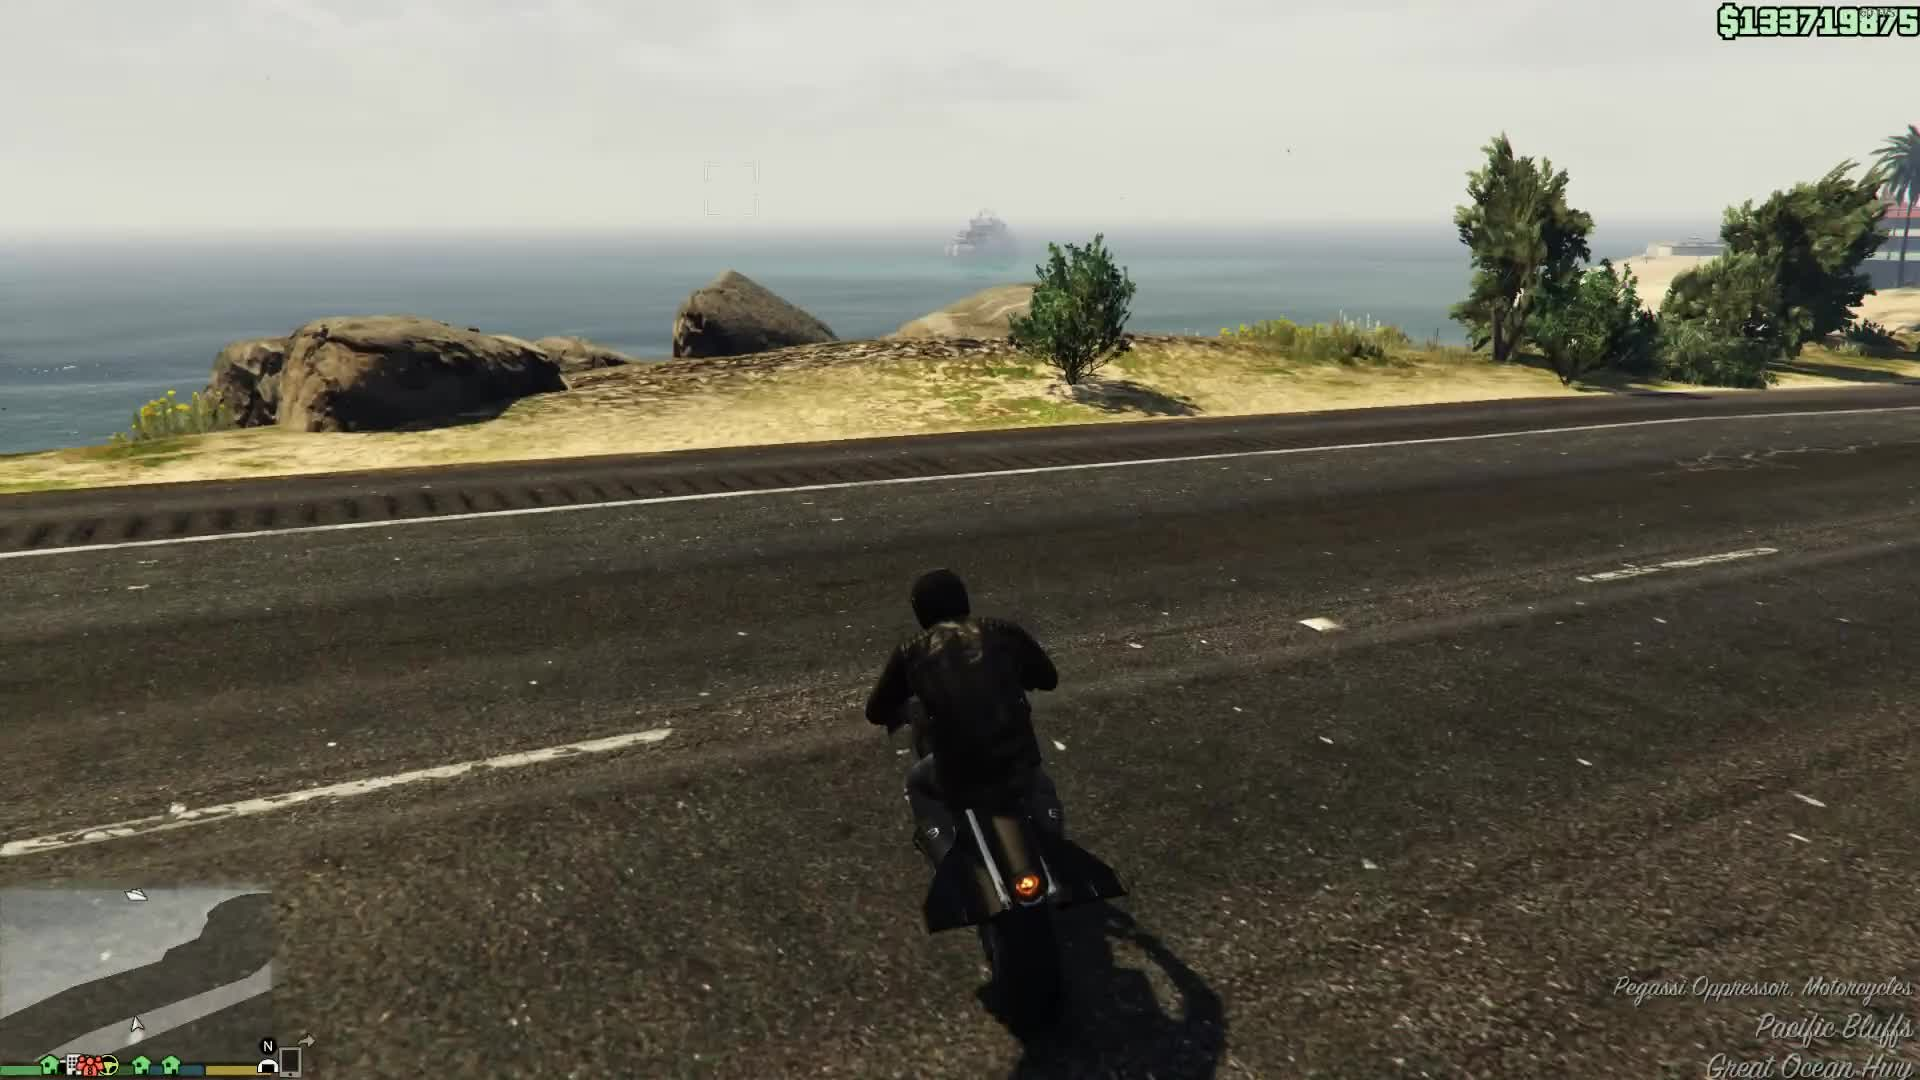 GrandTheftAutoV, First time lucky GIFs